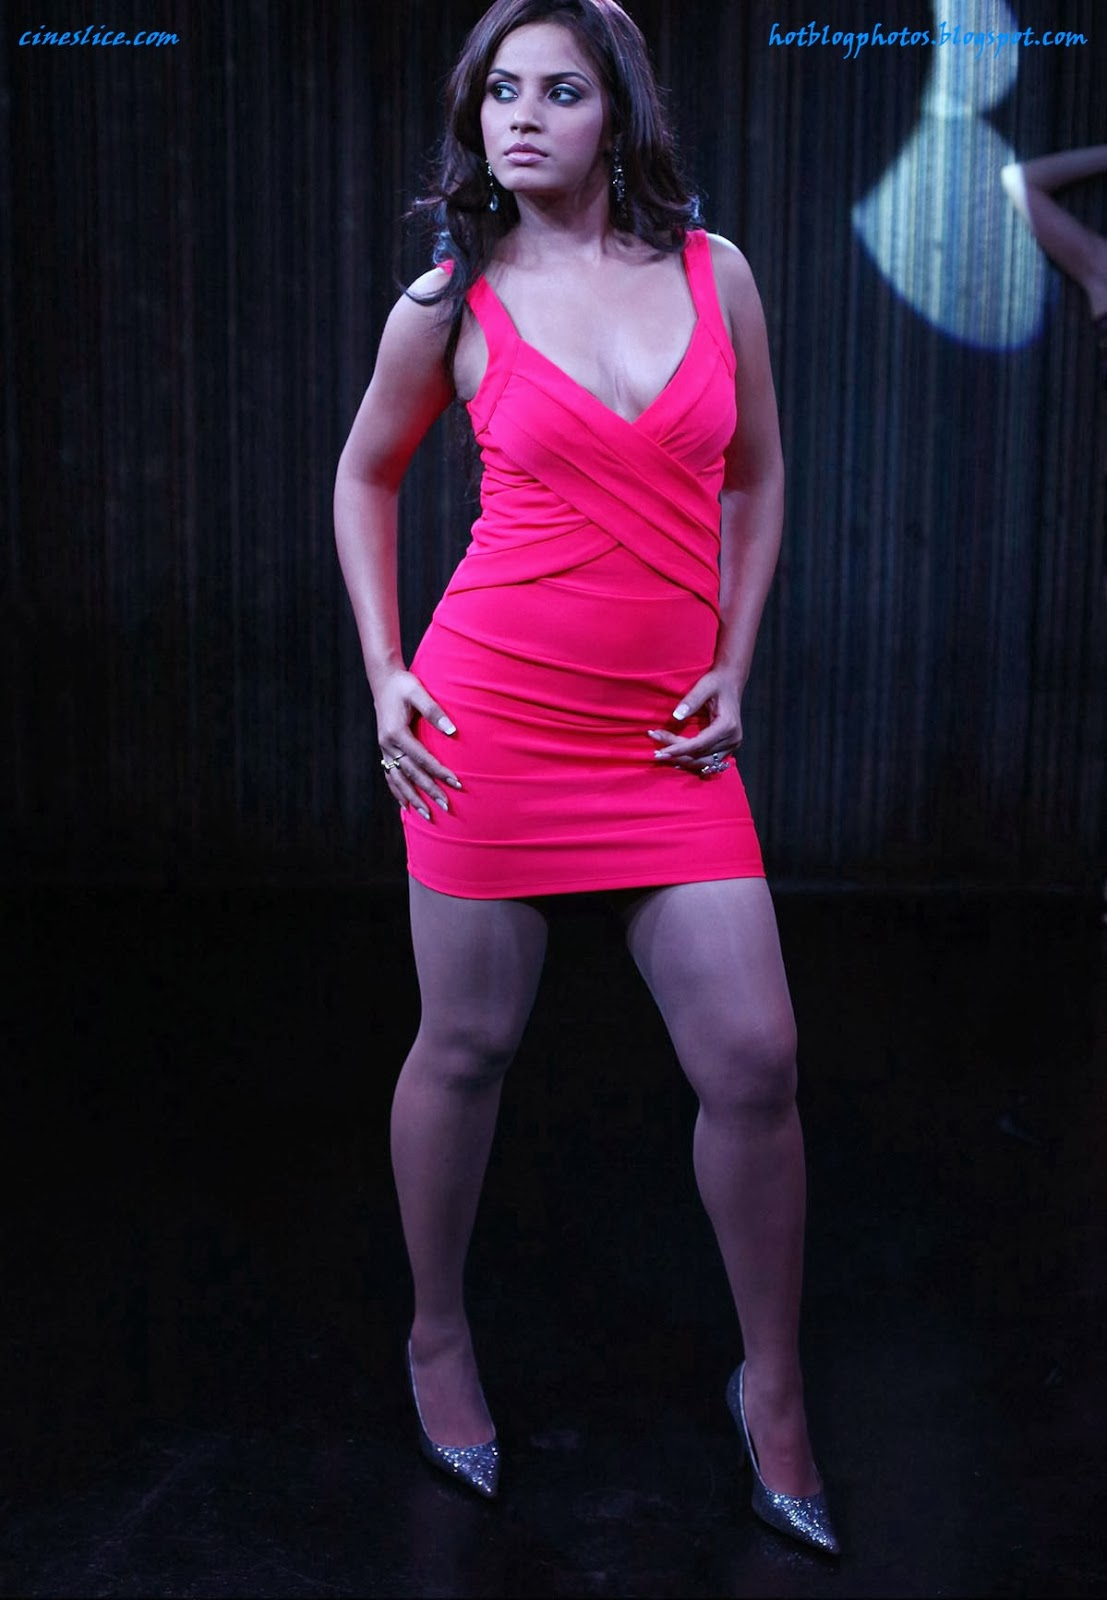 Neetu chandra hot thigh and cleavage show photos in tight for Hot images blog